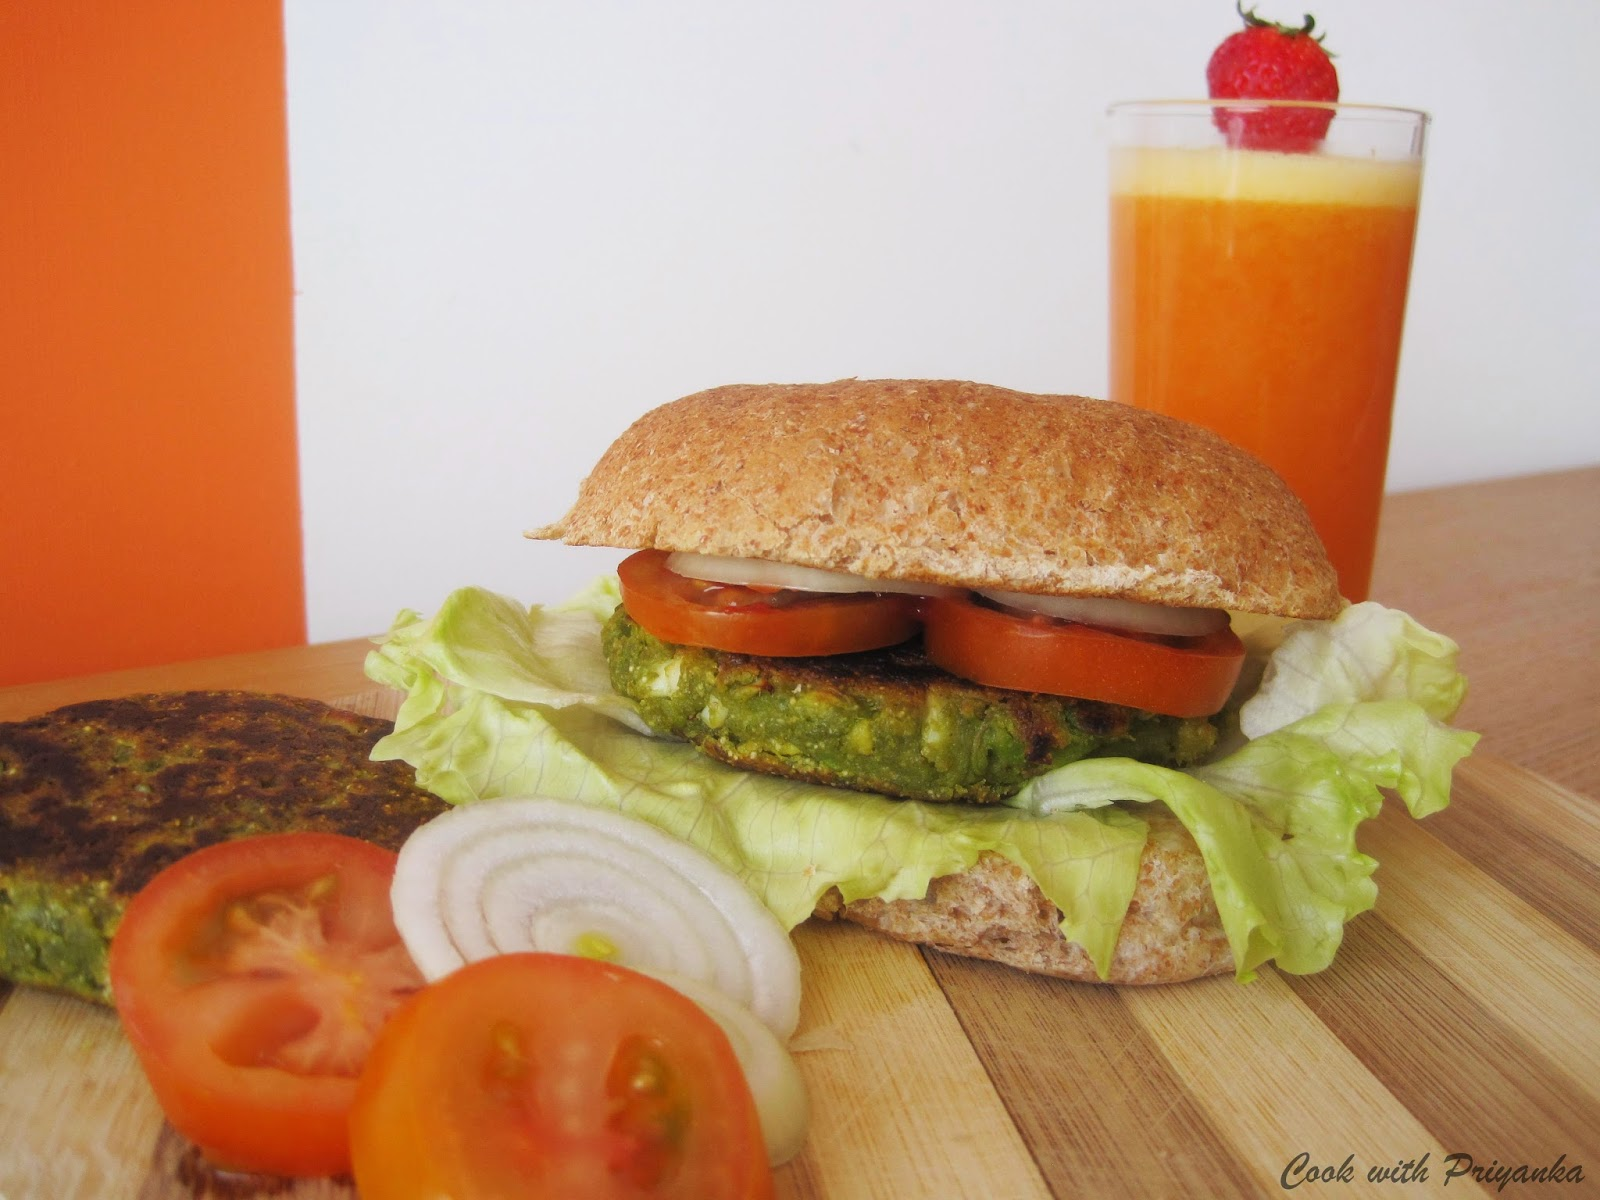 http://cookwithpriyankavarma.blogspot.co.uk/2014/04/avocado-pattie-burgers-egglesswith-egg.html